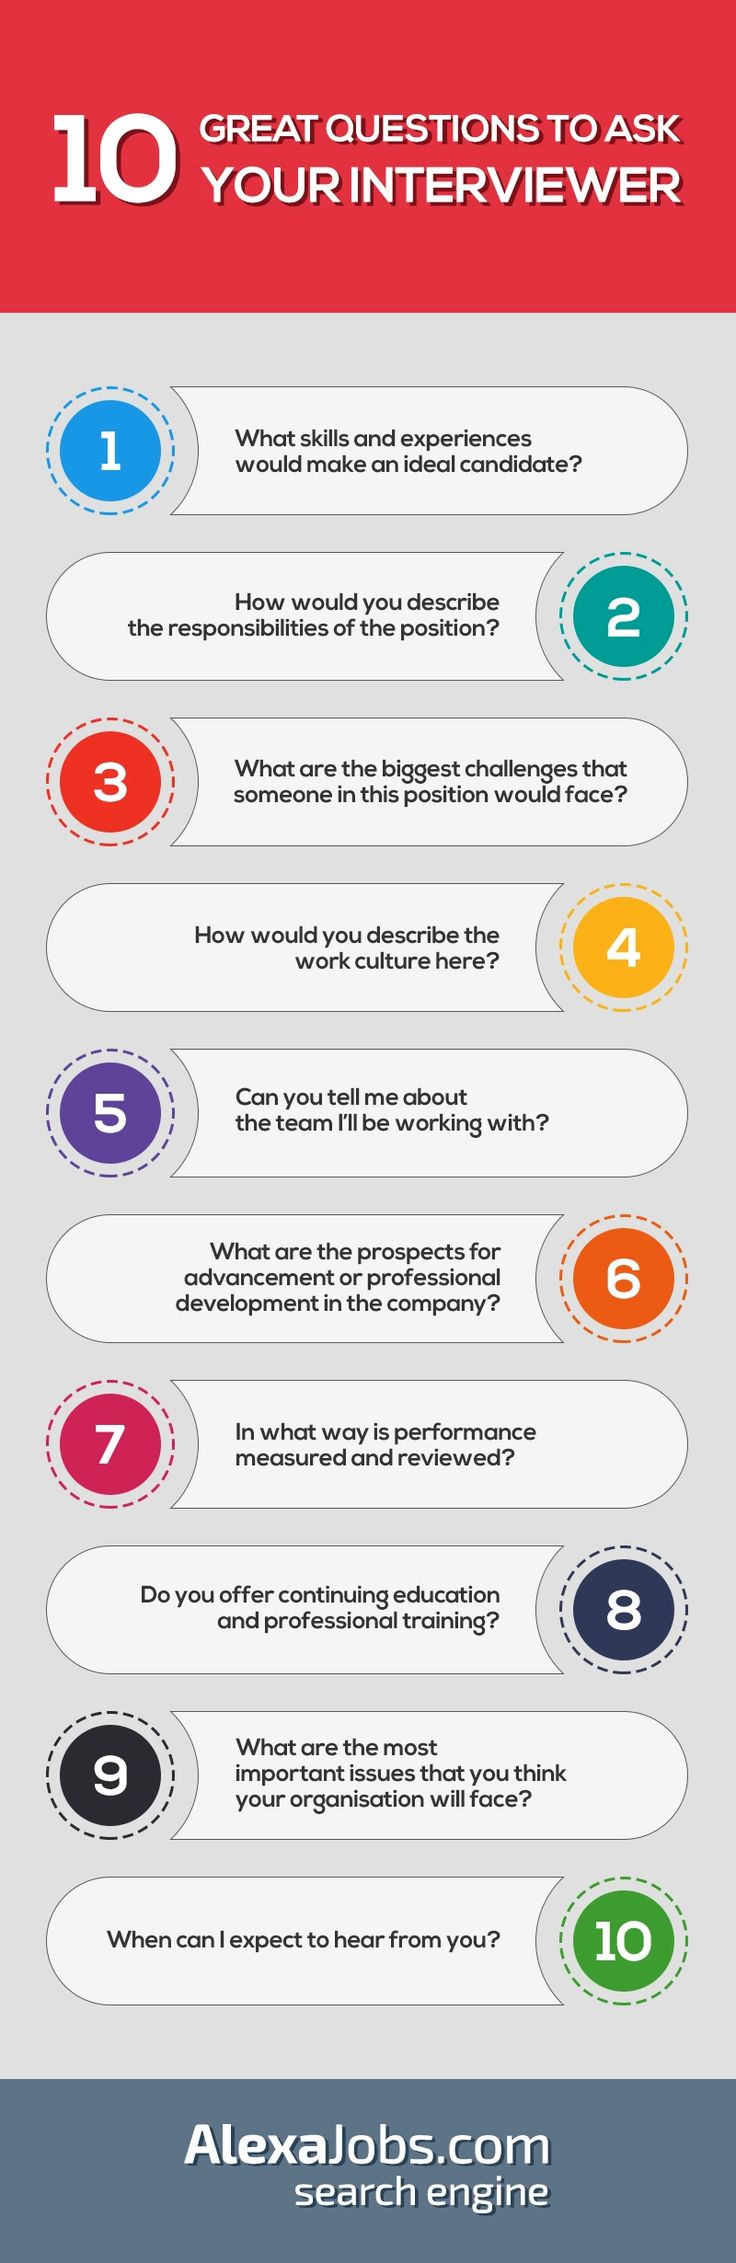 best ideas about it interview questions answers 10 great questions to ask your interviewer infographic often job interviews can feel like an interrogation but they re meant to be a conversation